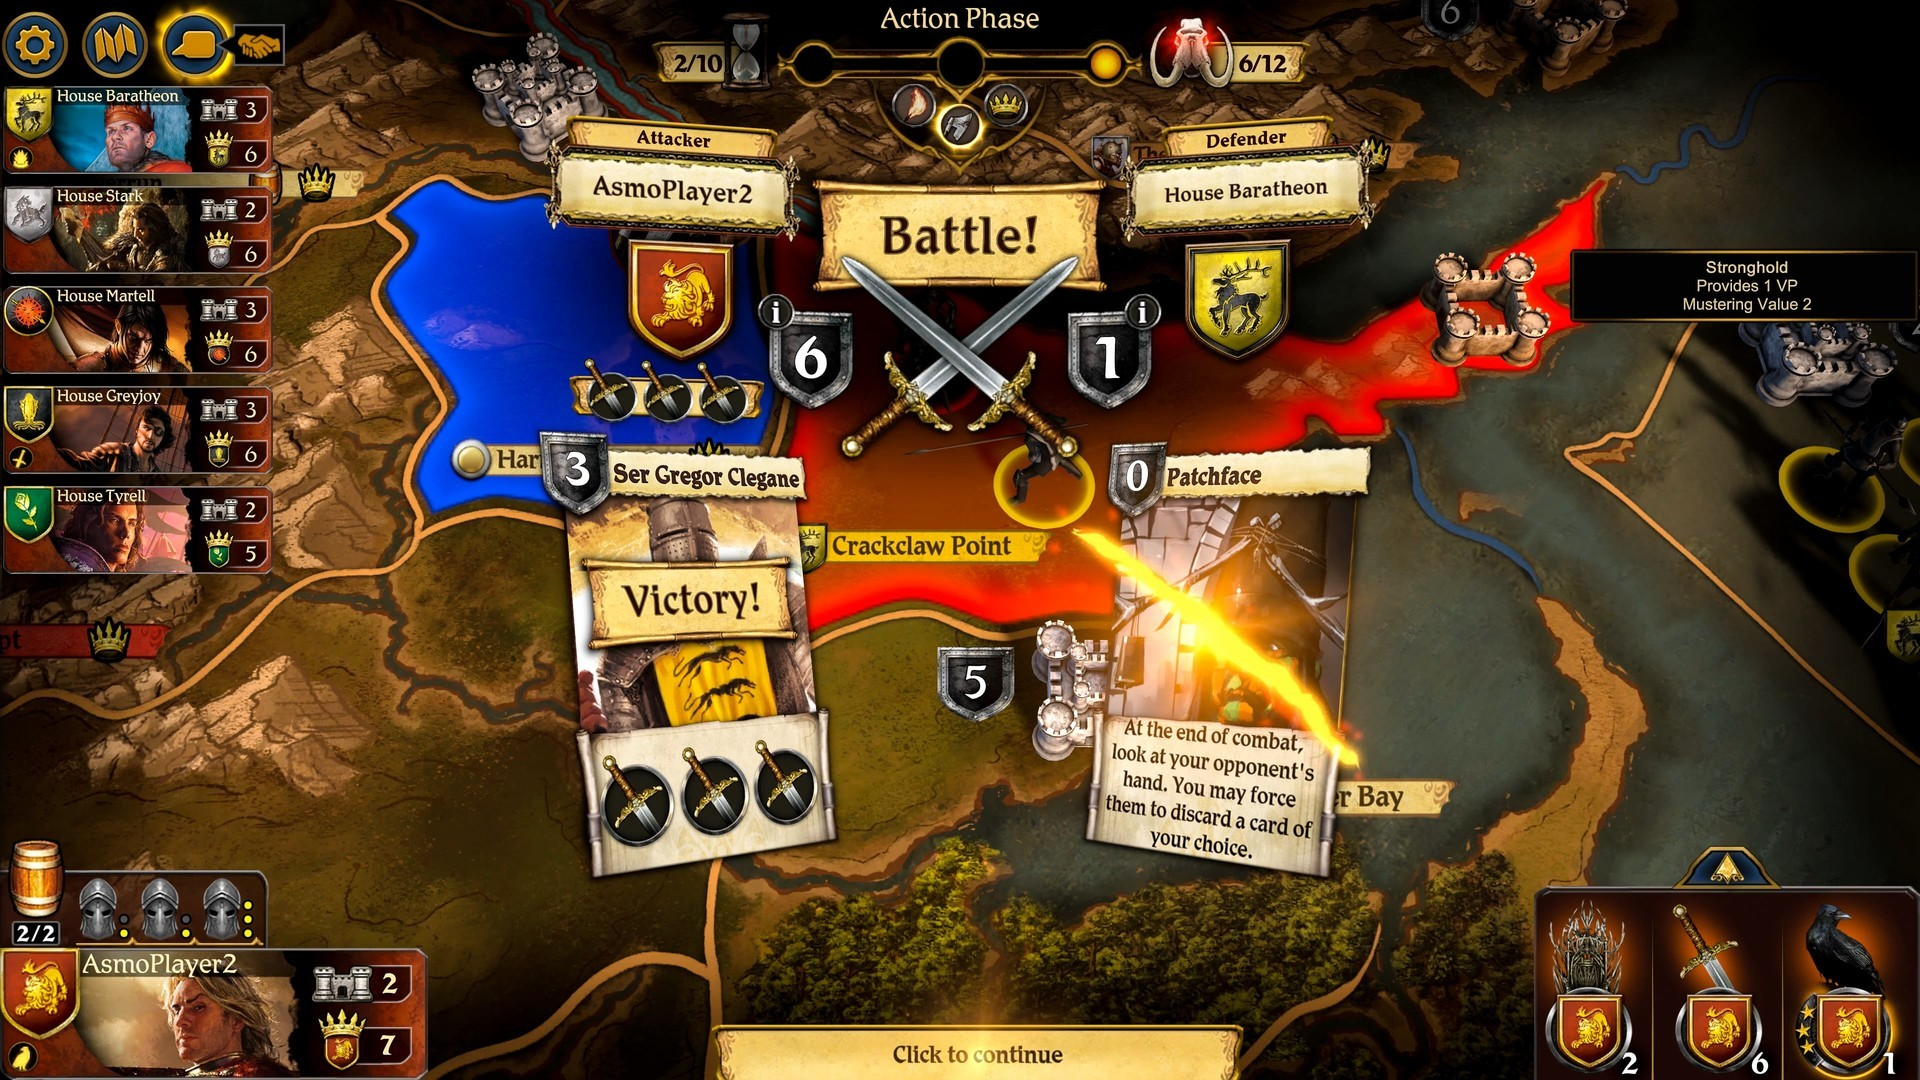 The Game of Thrones board game is coming to PC later this year